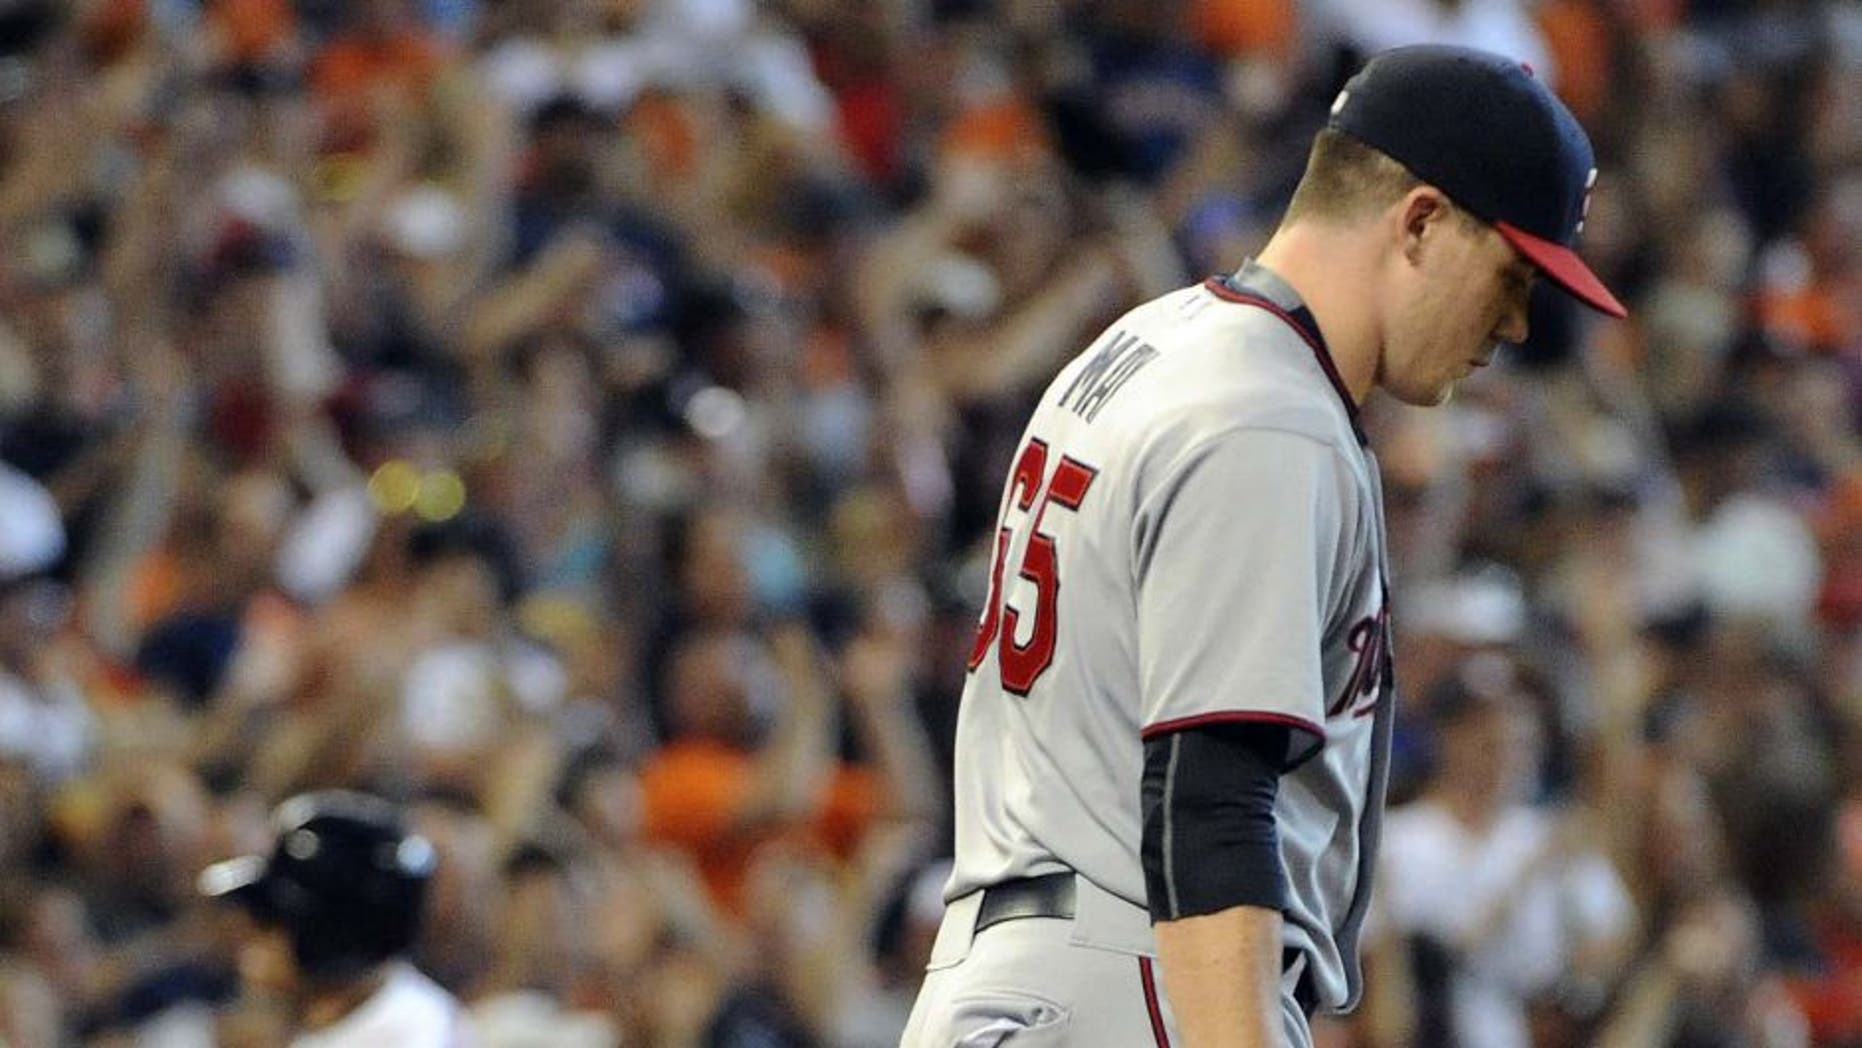 Minnesota Twins relief pitcher Trevor May walks back to the mound as Jed Lowrie rounds third base after hitting a grand slam in the seventh inning Sunday, Sept. 6, 2015, in Houston.